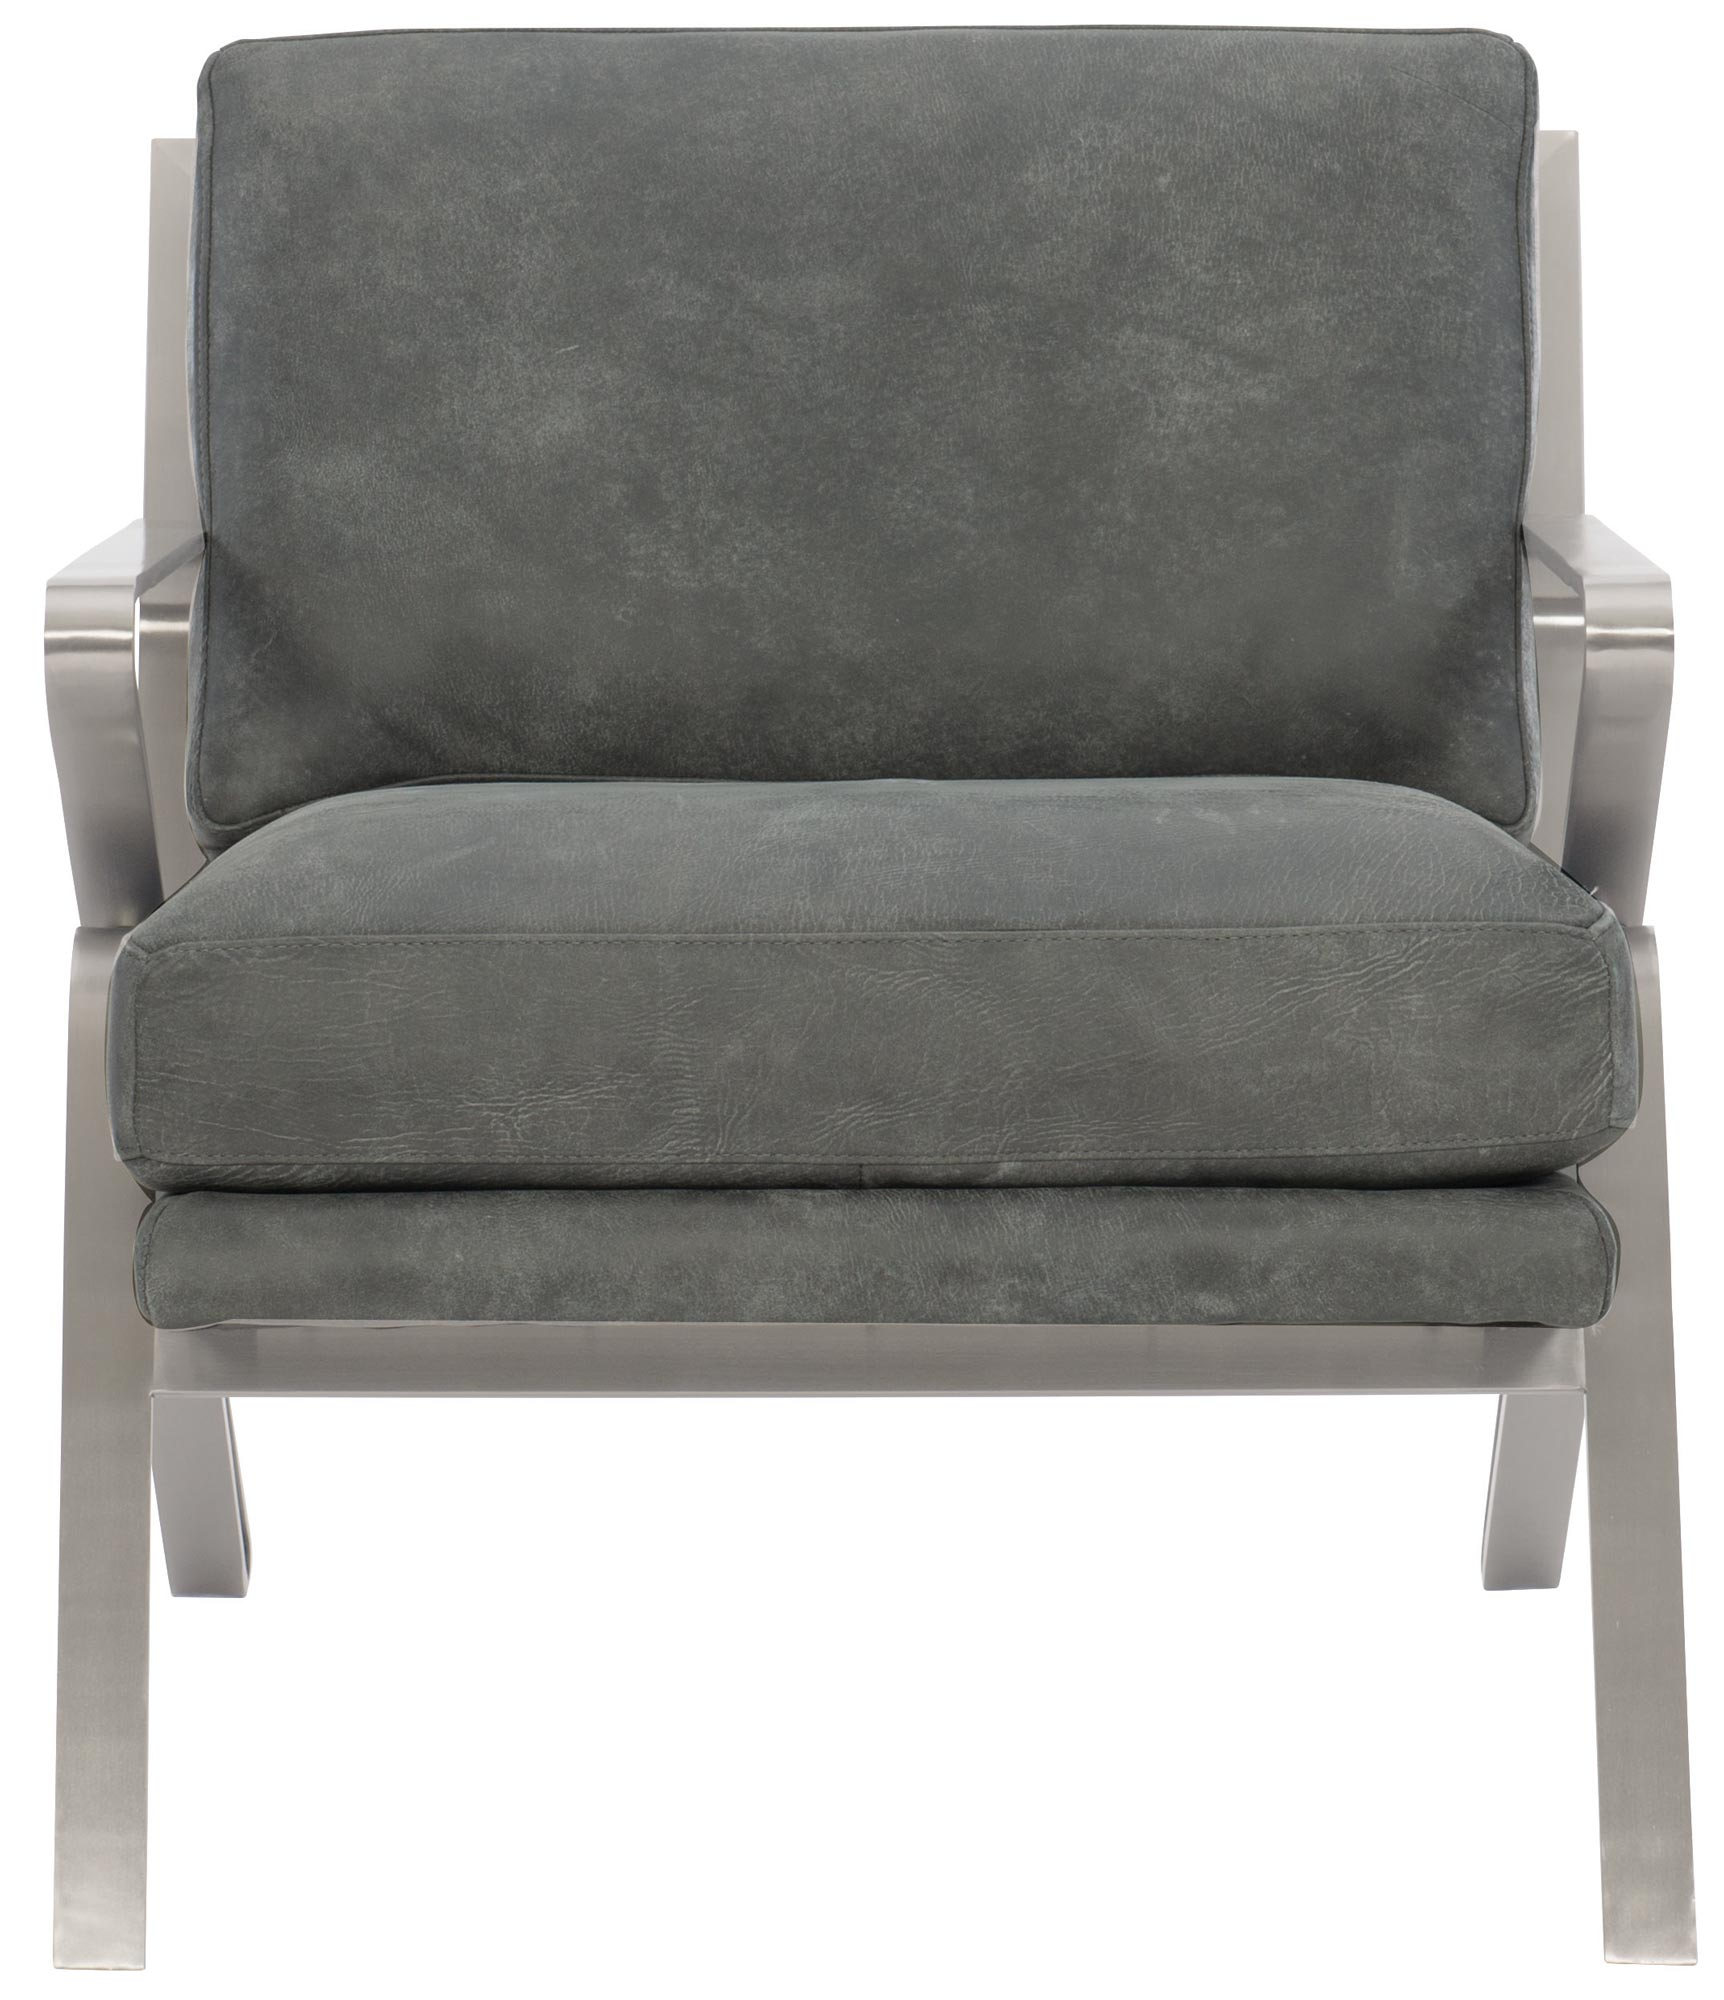 Bernhardt Leather Chair Leather Chair Bernhardt